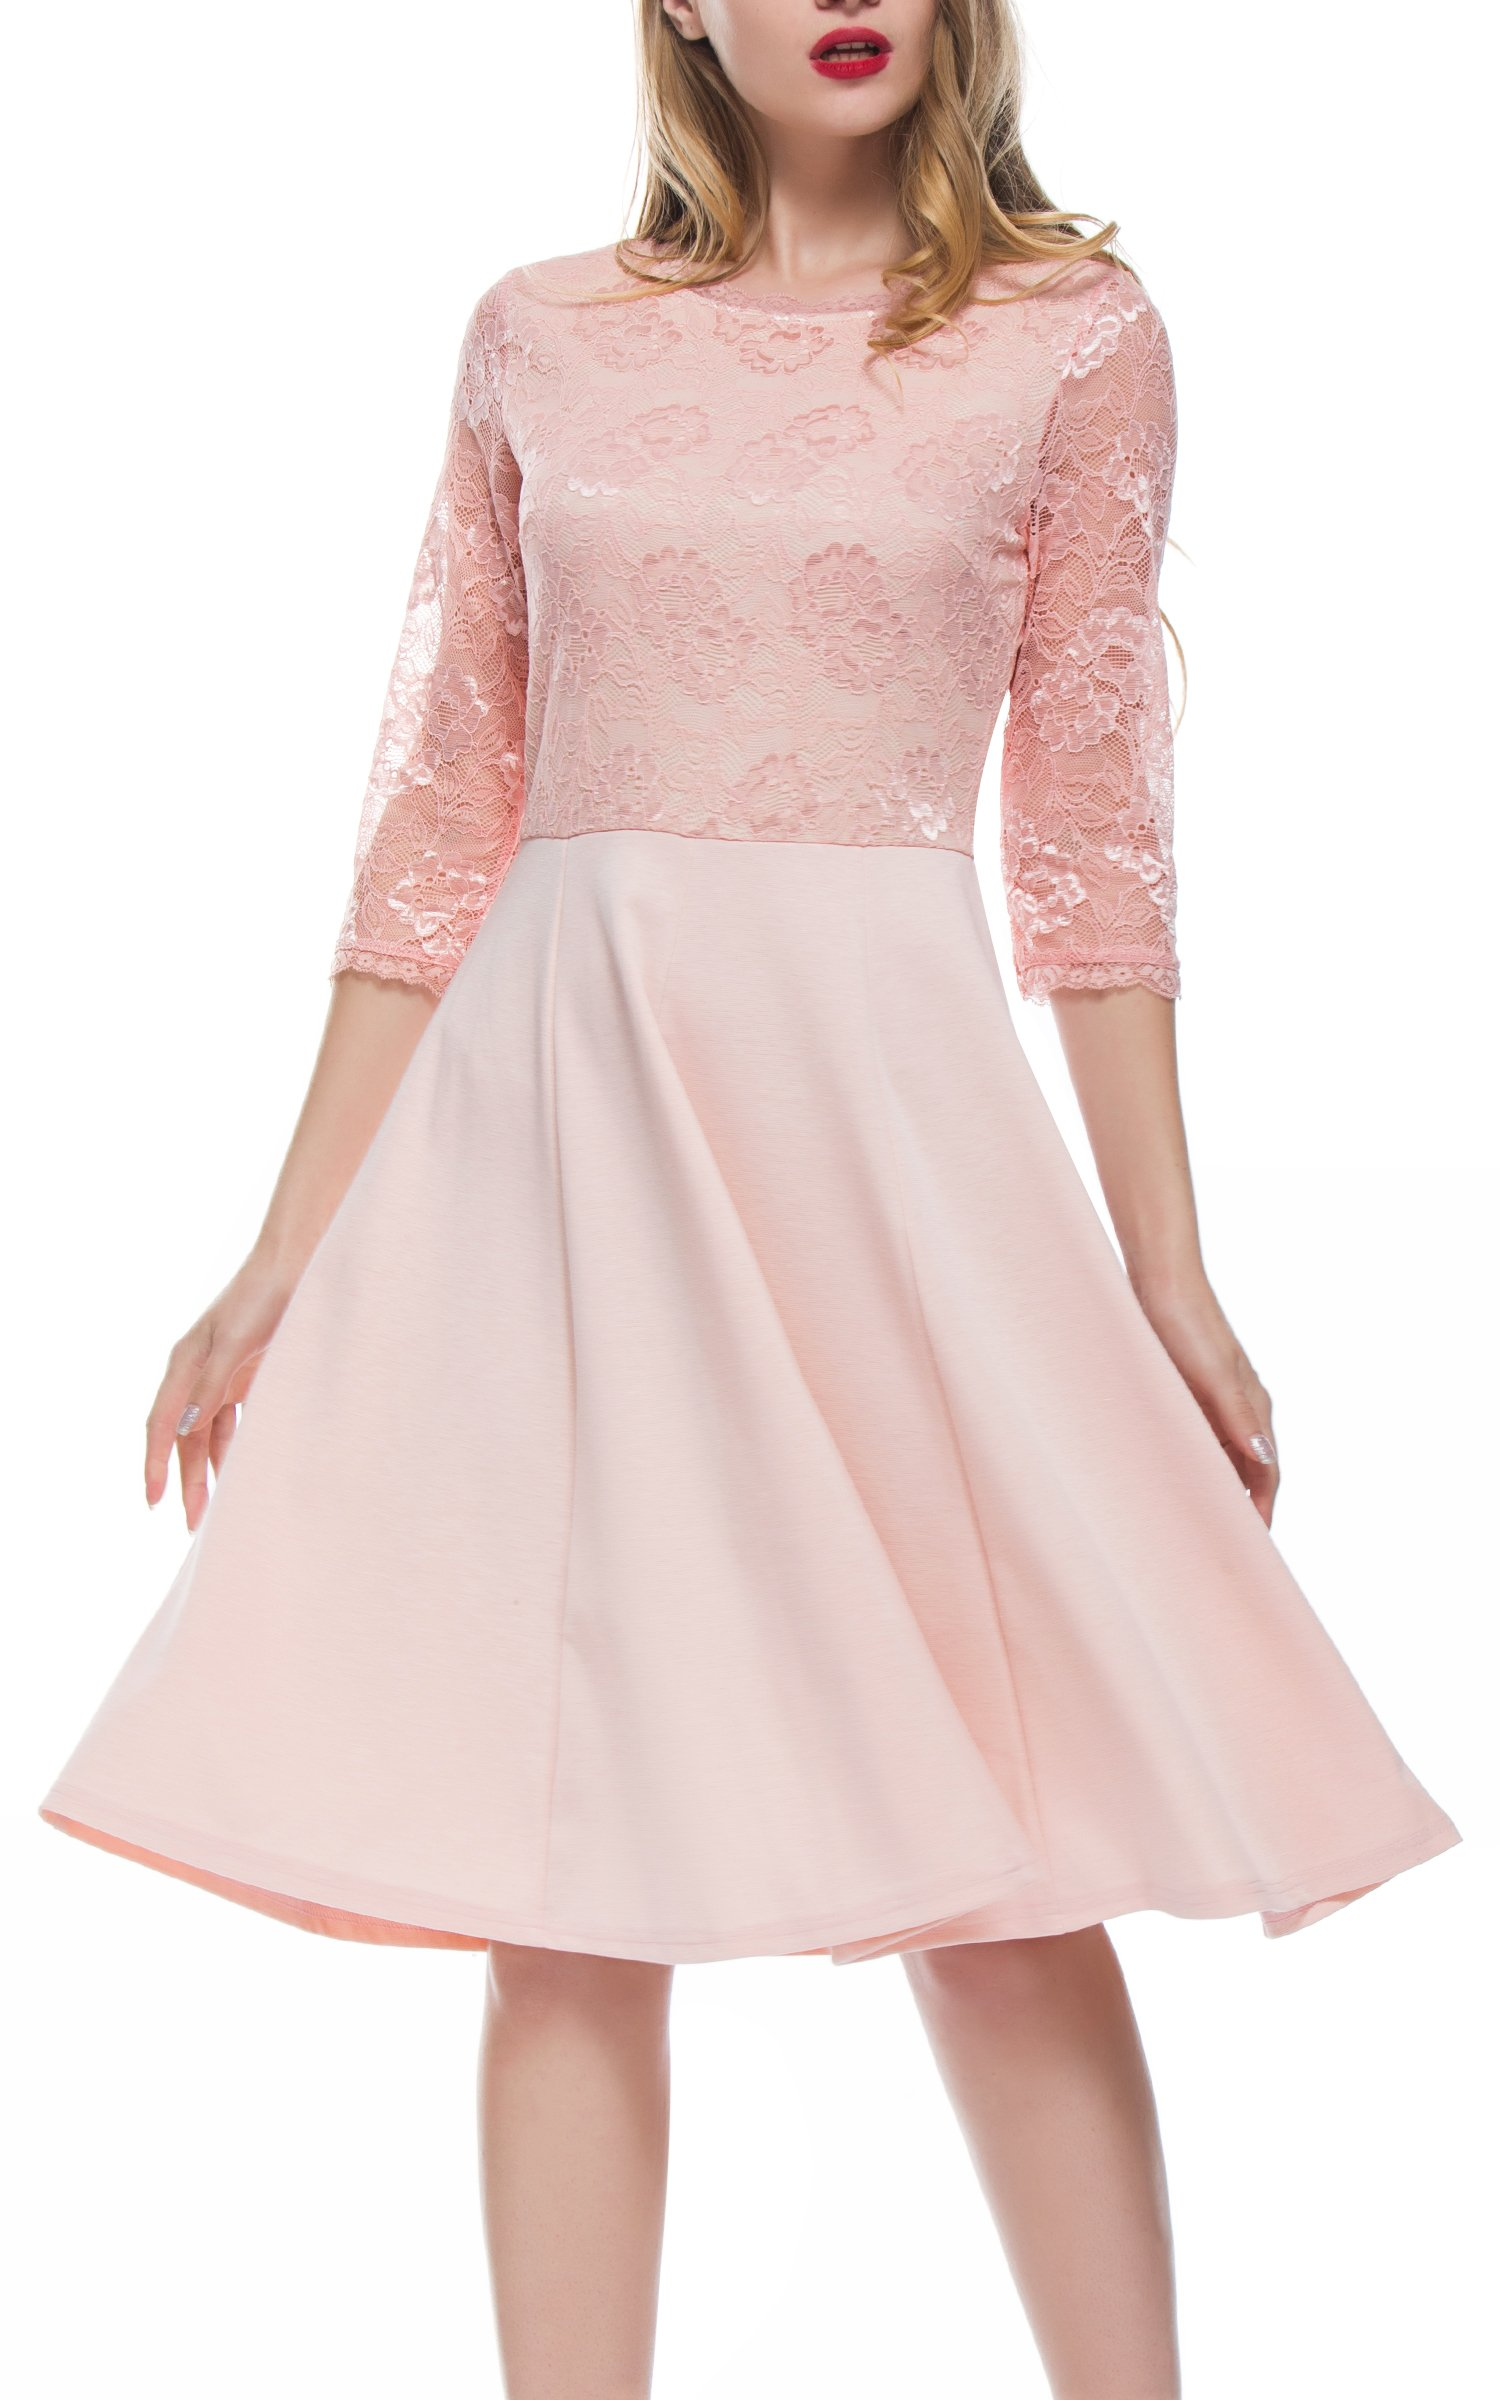 DKBAYA Women's Vintage Floral Lace 2/3 Sleeve Flare Swing Cocktail Party Dress (S, Pink)